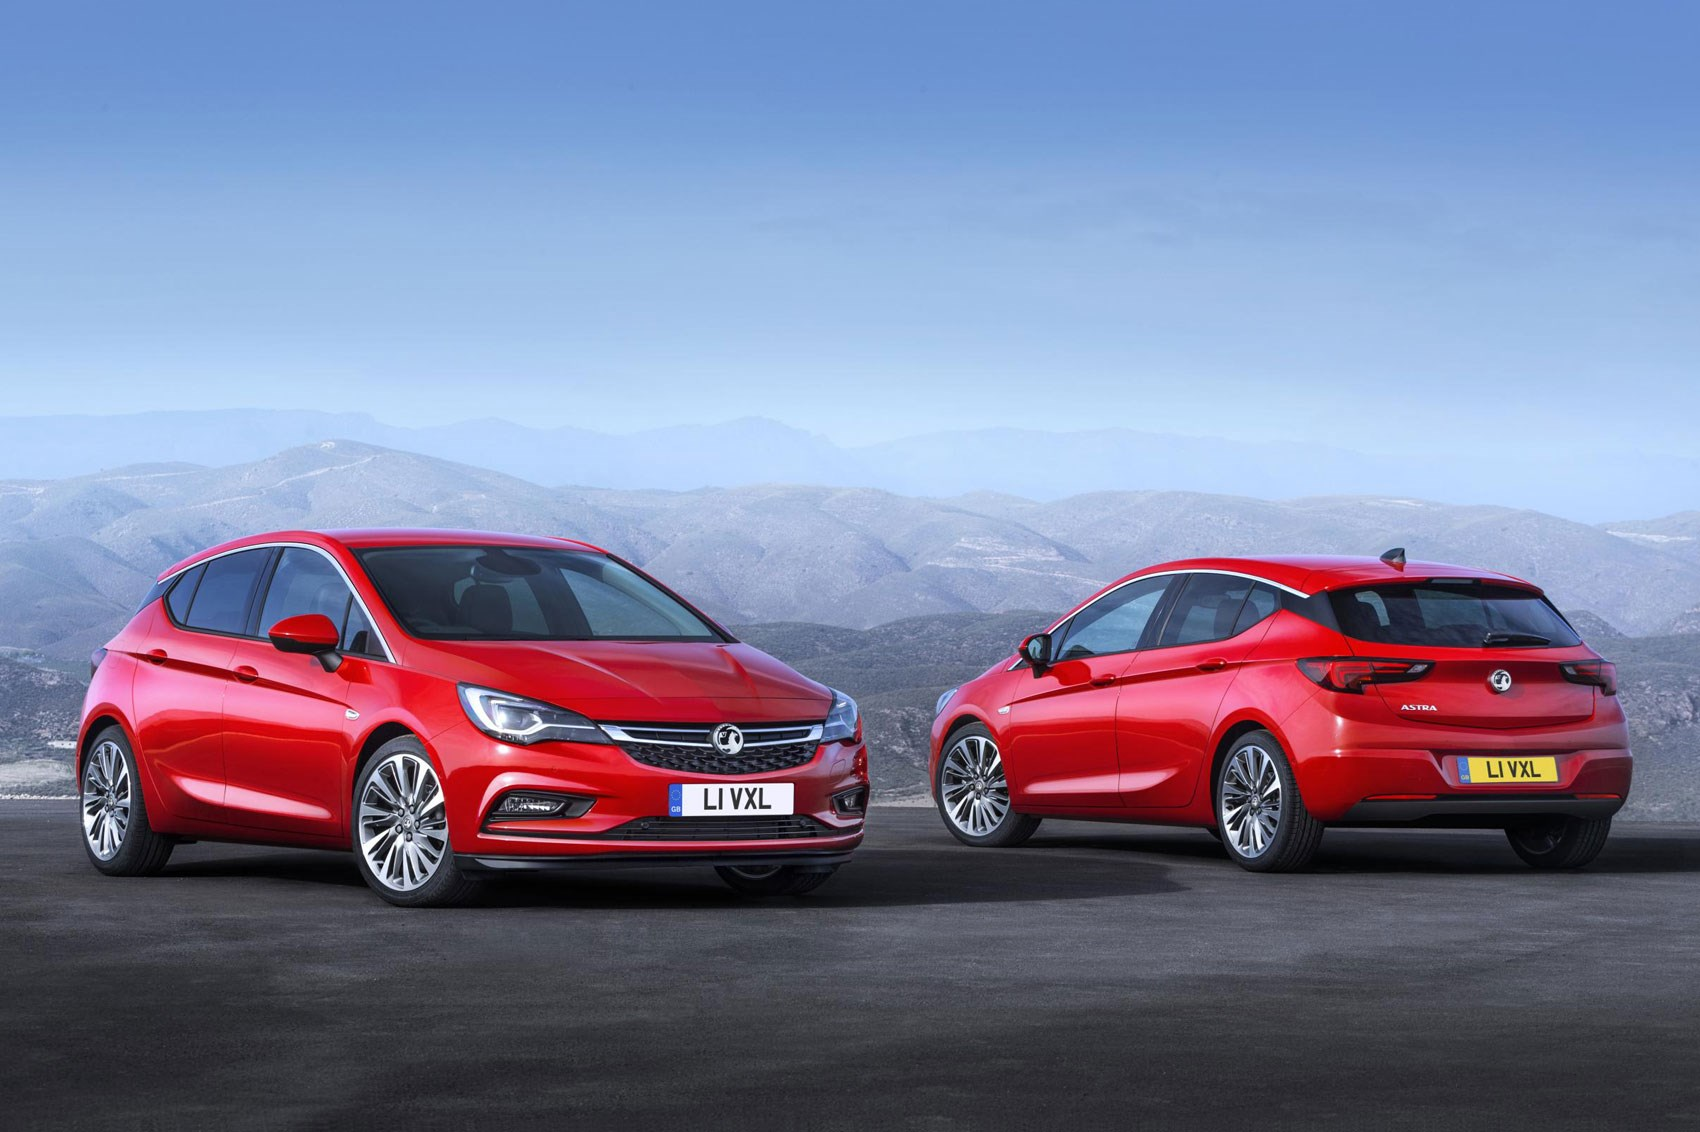 2015 Vauxhall Astra To Start From GBP15k By CAR Magazine